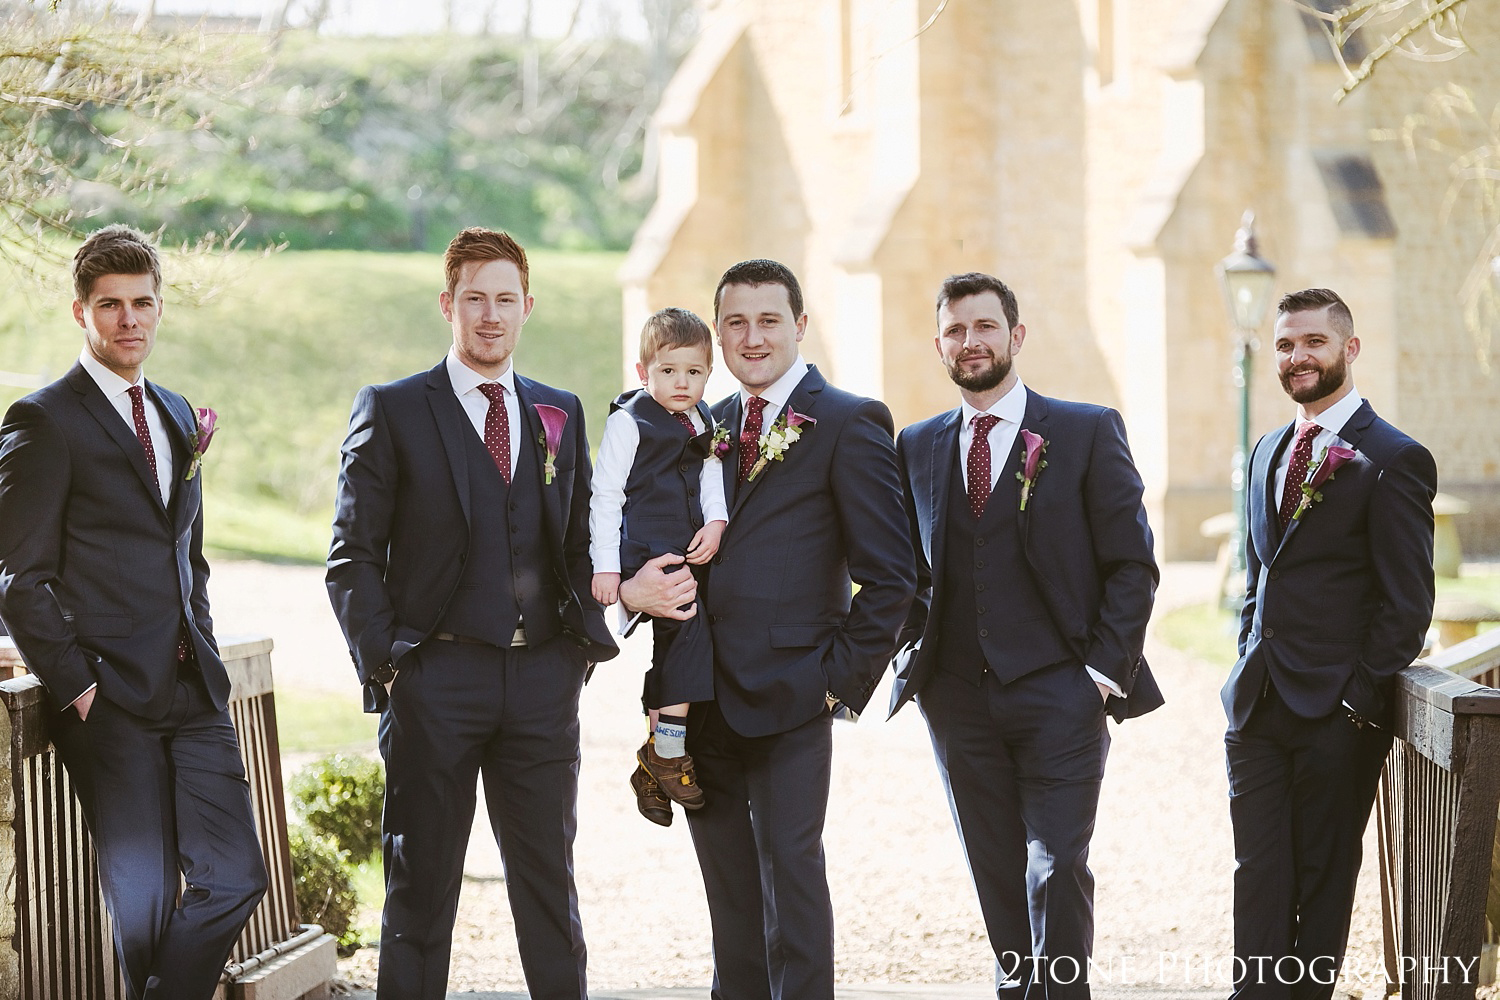 The Groomsmen.  Wedding photography at Haselbury Mill and the Old Tythe Barn in Somerset by www.2tonephotography.co.uk